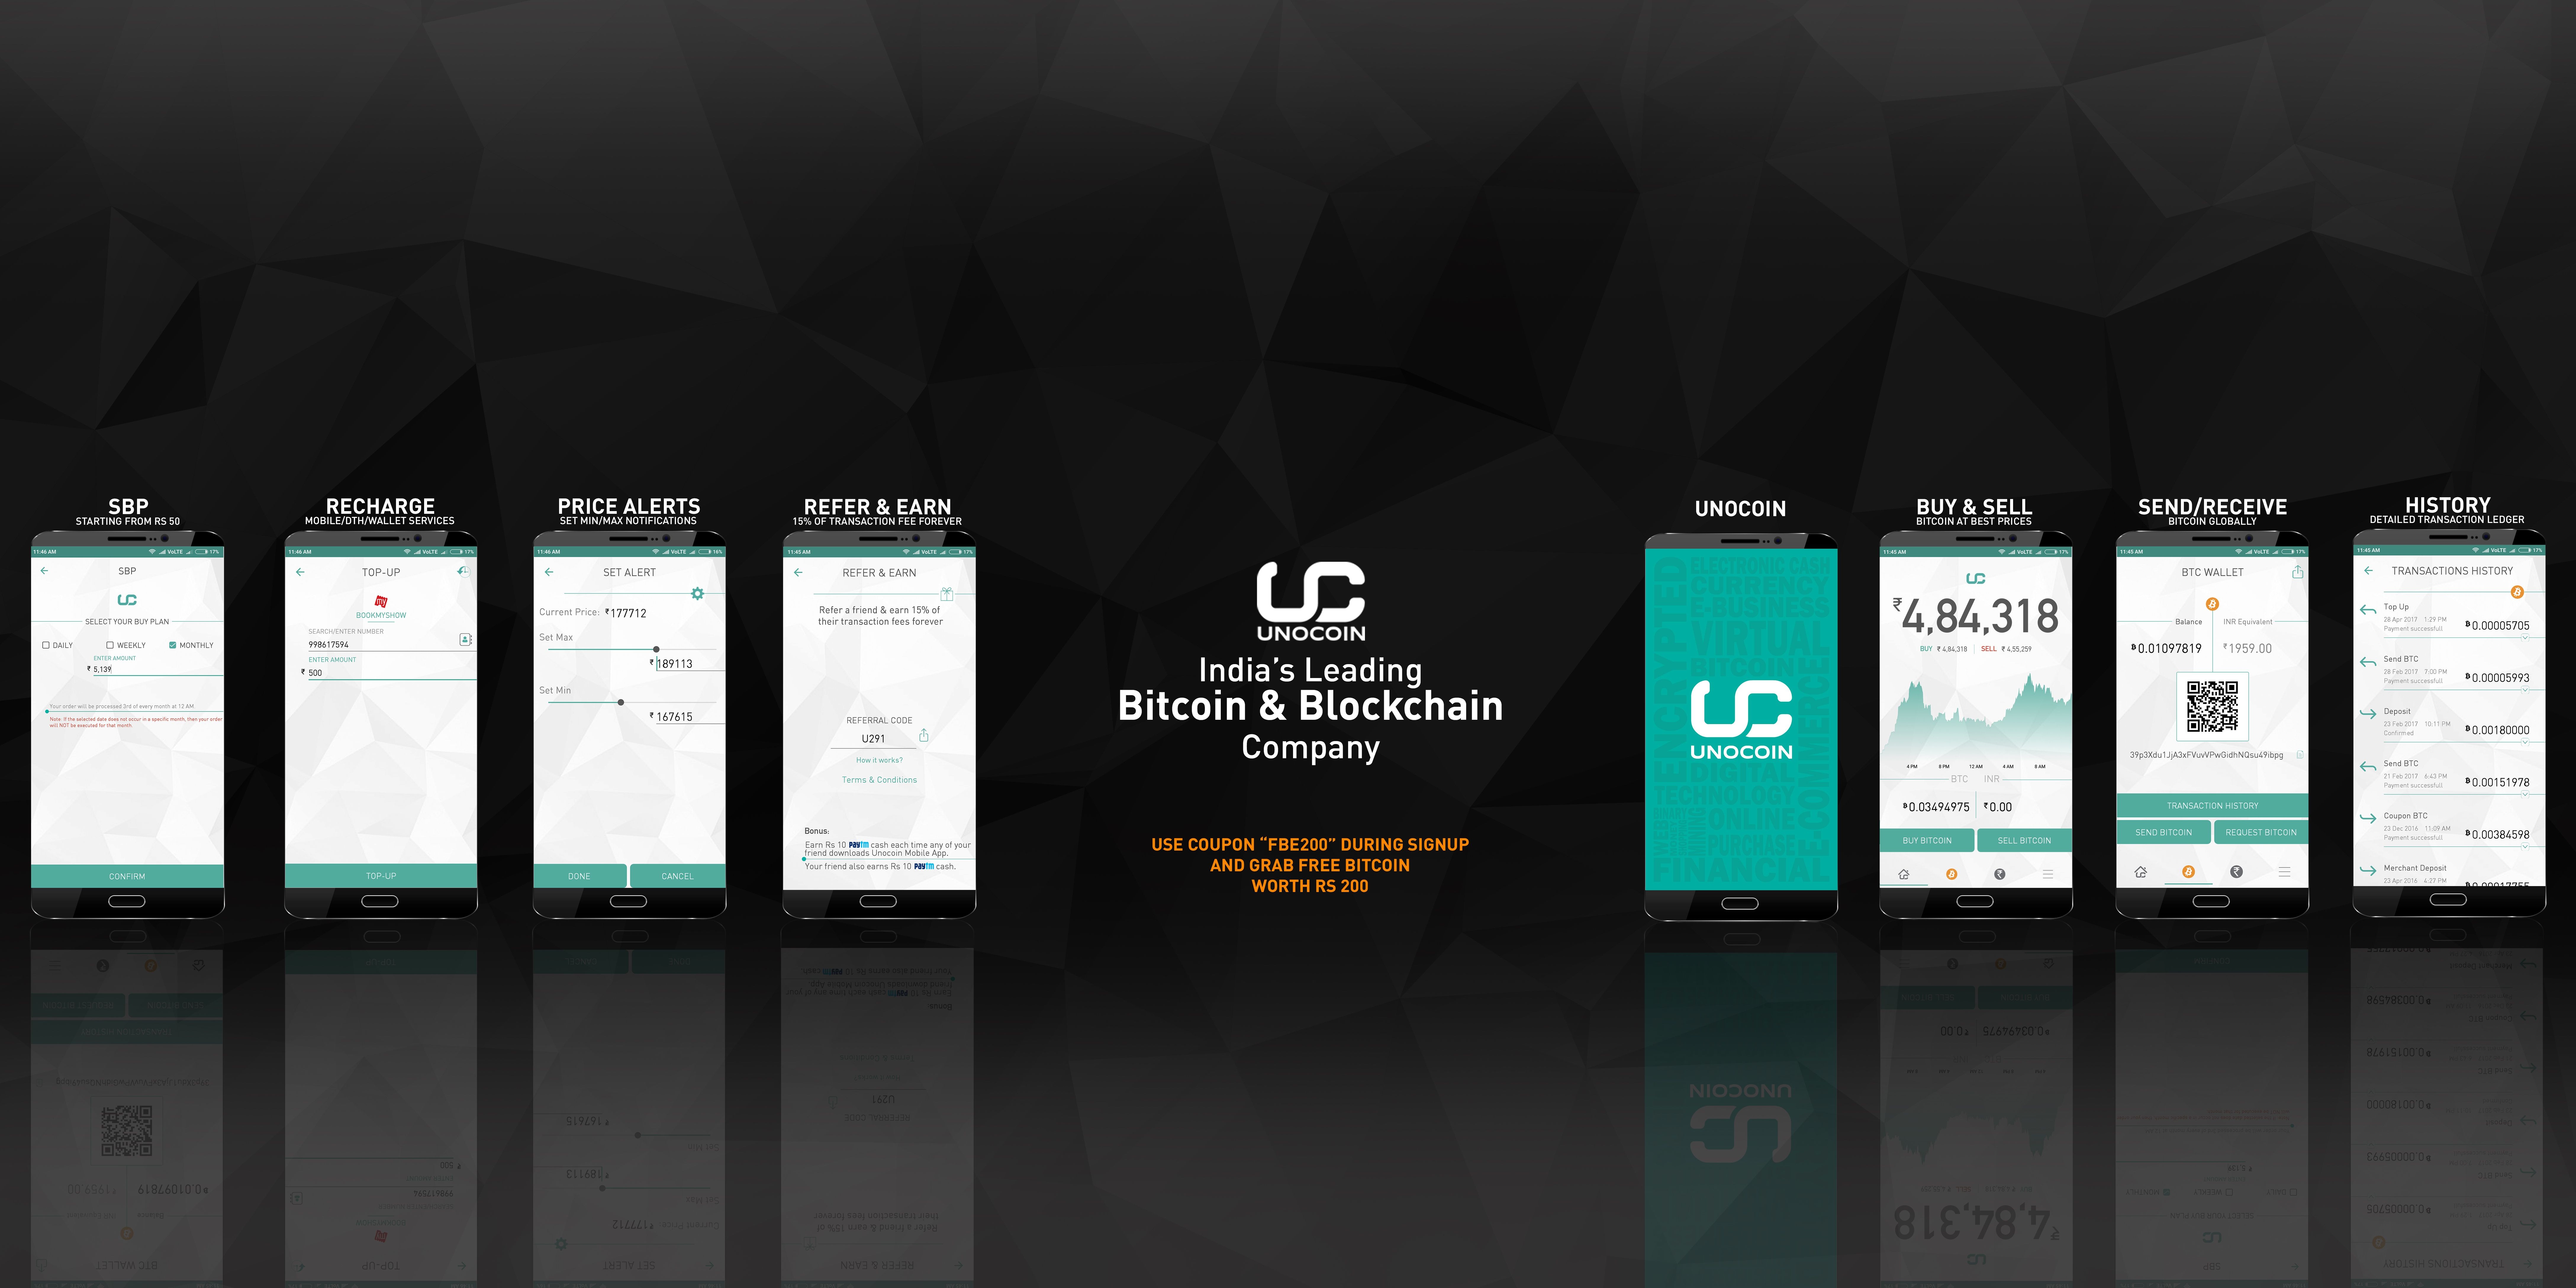 Unocoin is your one stop solution for bitcoin services